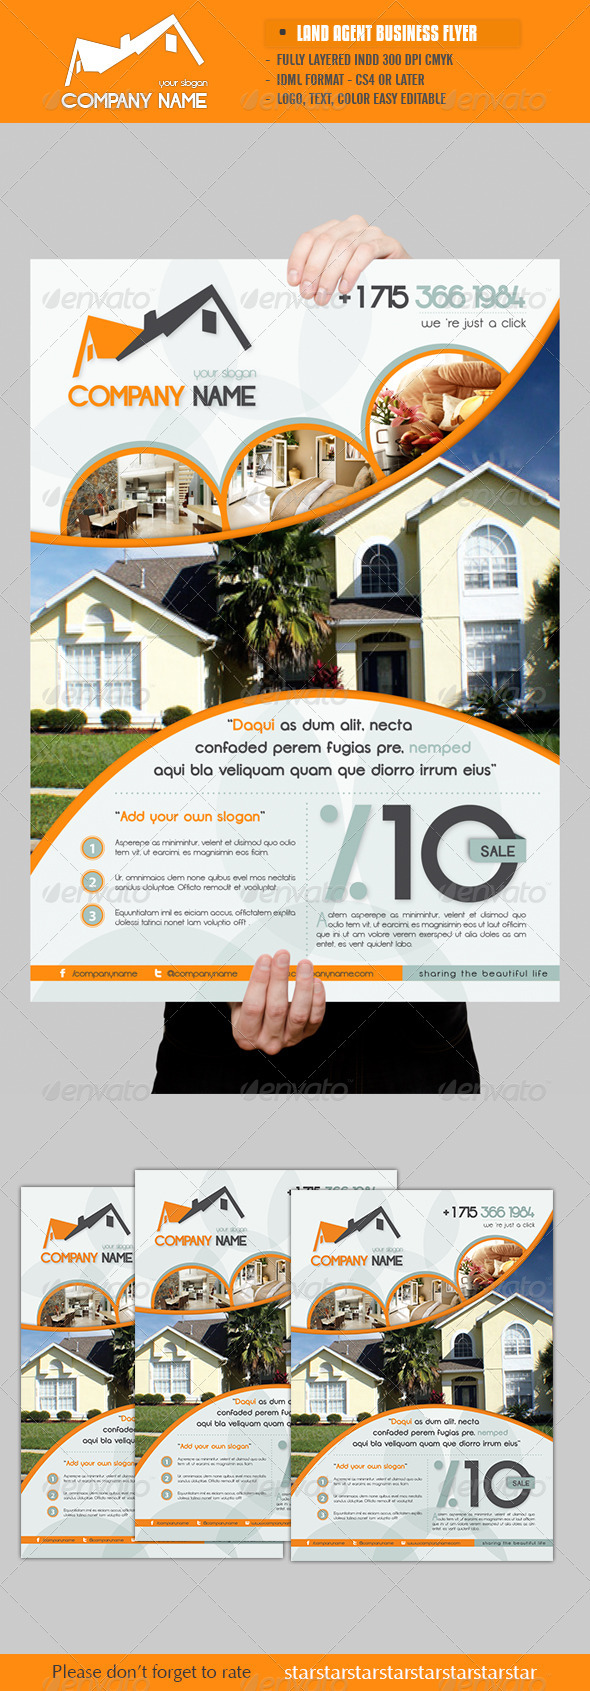 GraphicRiver Land Agent Business Flyer 2922593